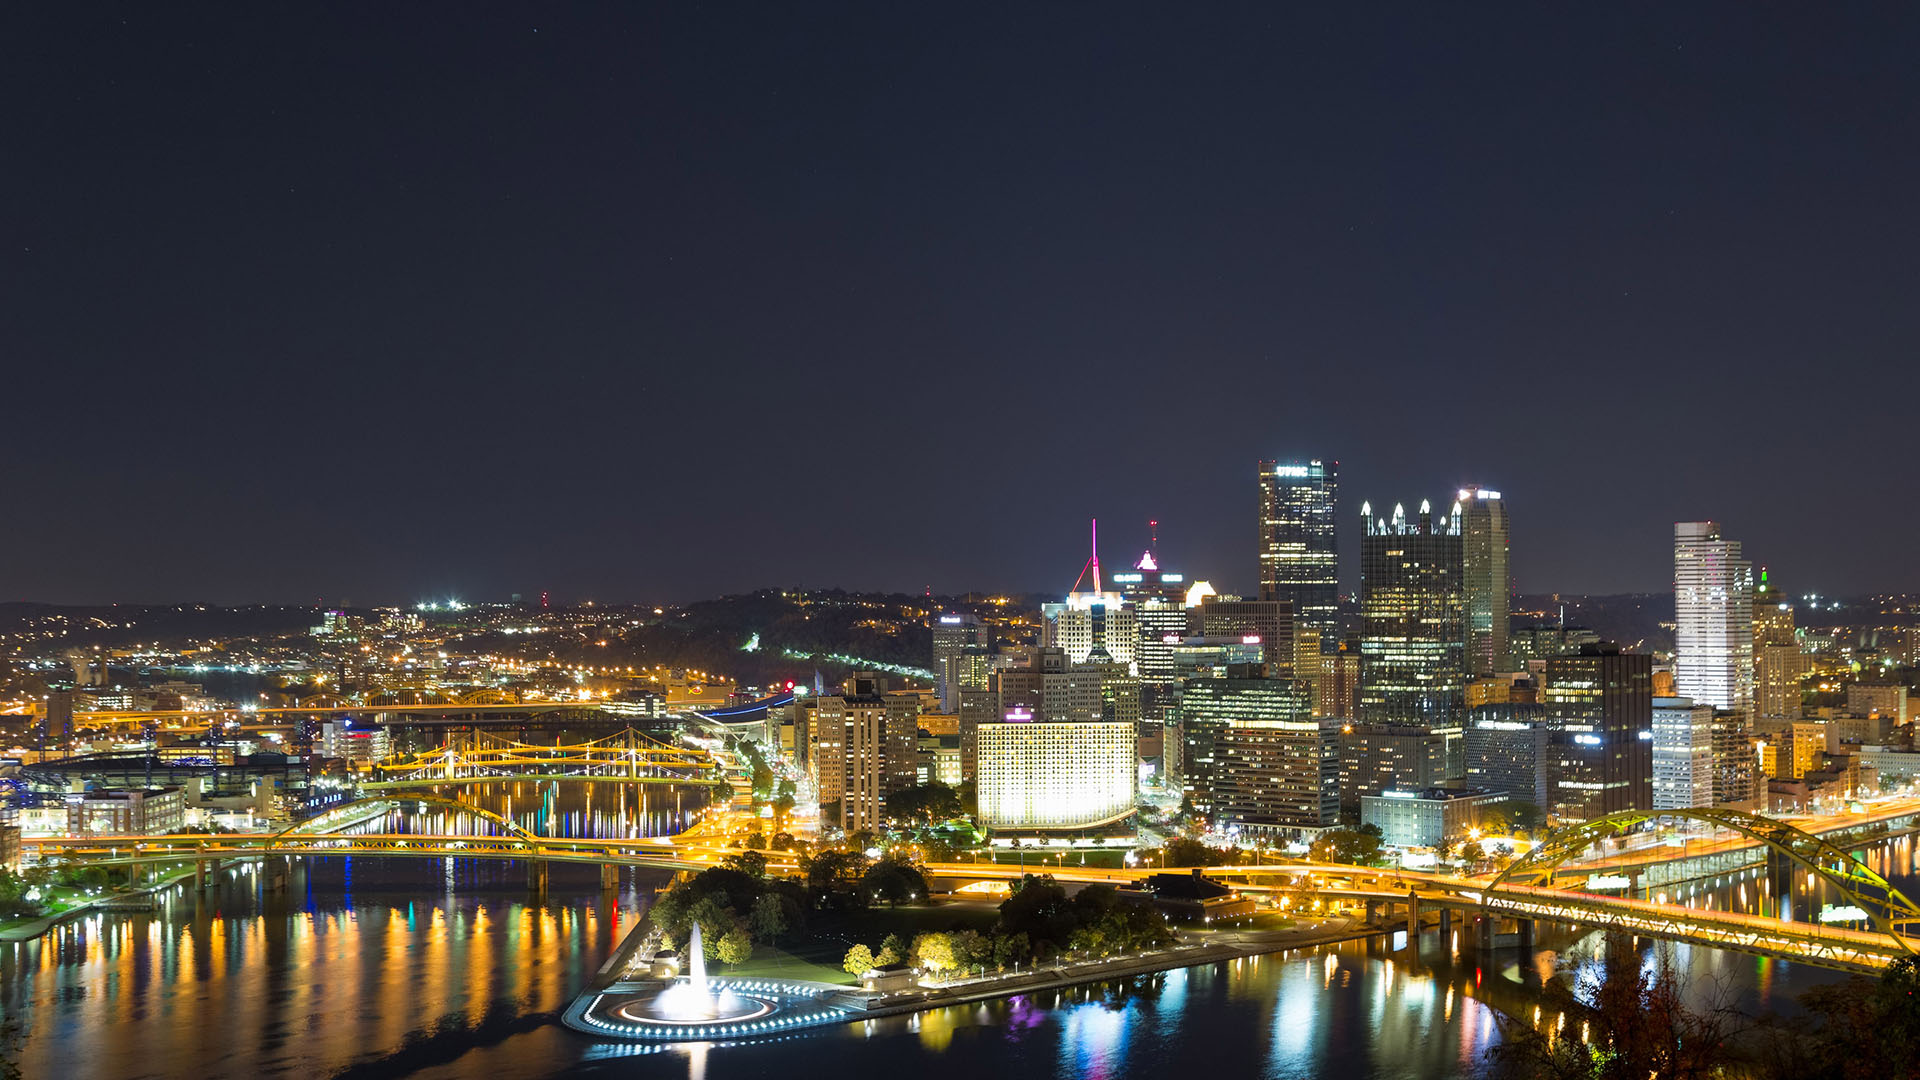 pittsburgh nightime nightlife live wallpaper of sky scrapers and bridges